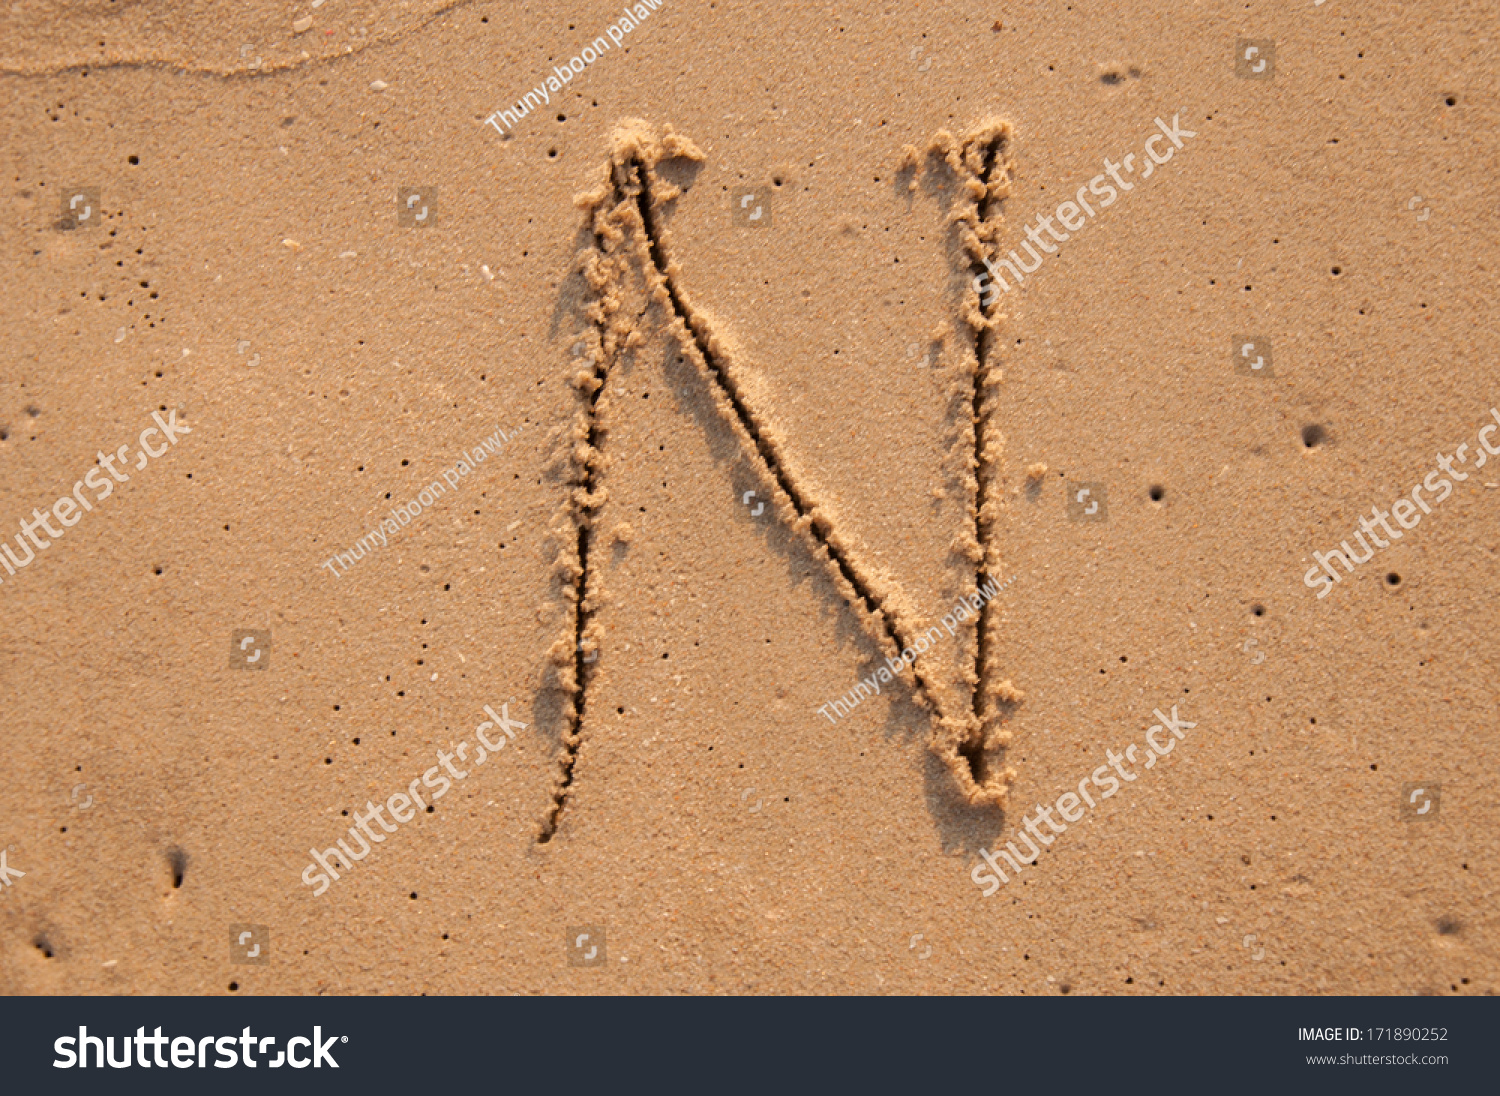 N text written in the sandy on the beach #171890252